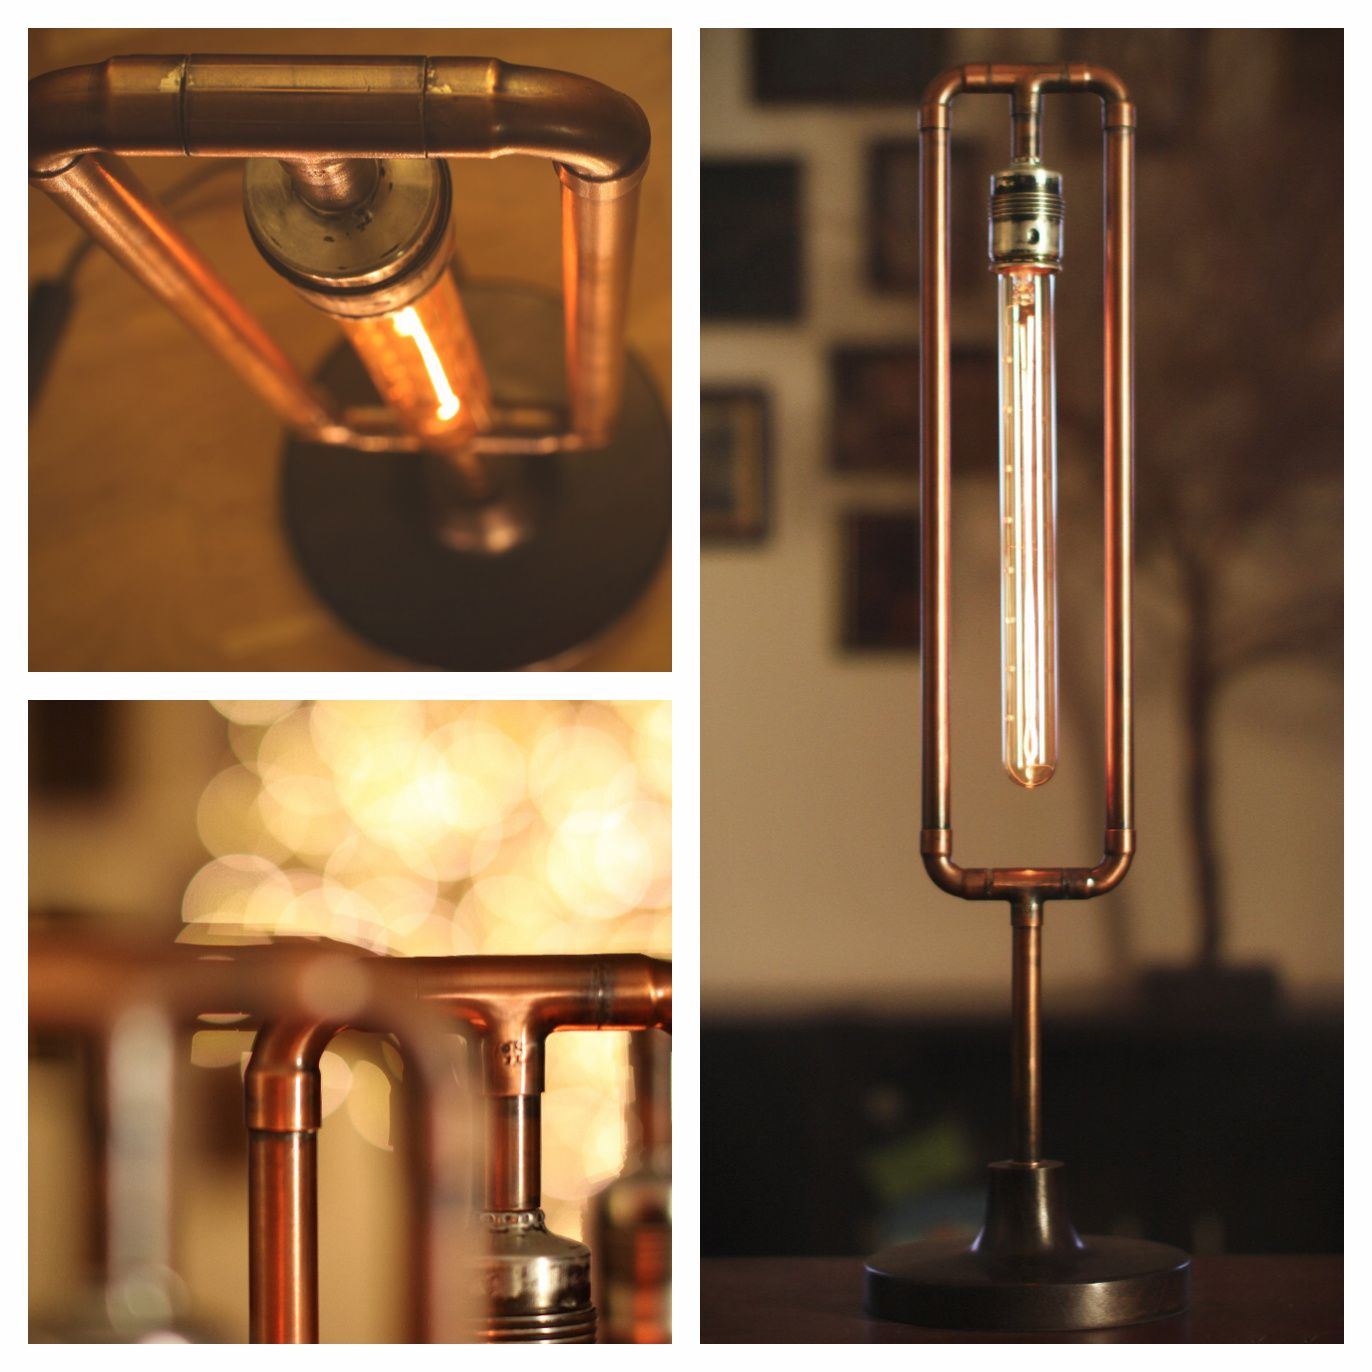 Lampe Kupfer Industrial Filament Lamp By Budavari Smith Budavari Viosmith